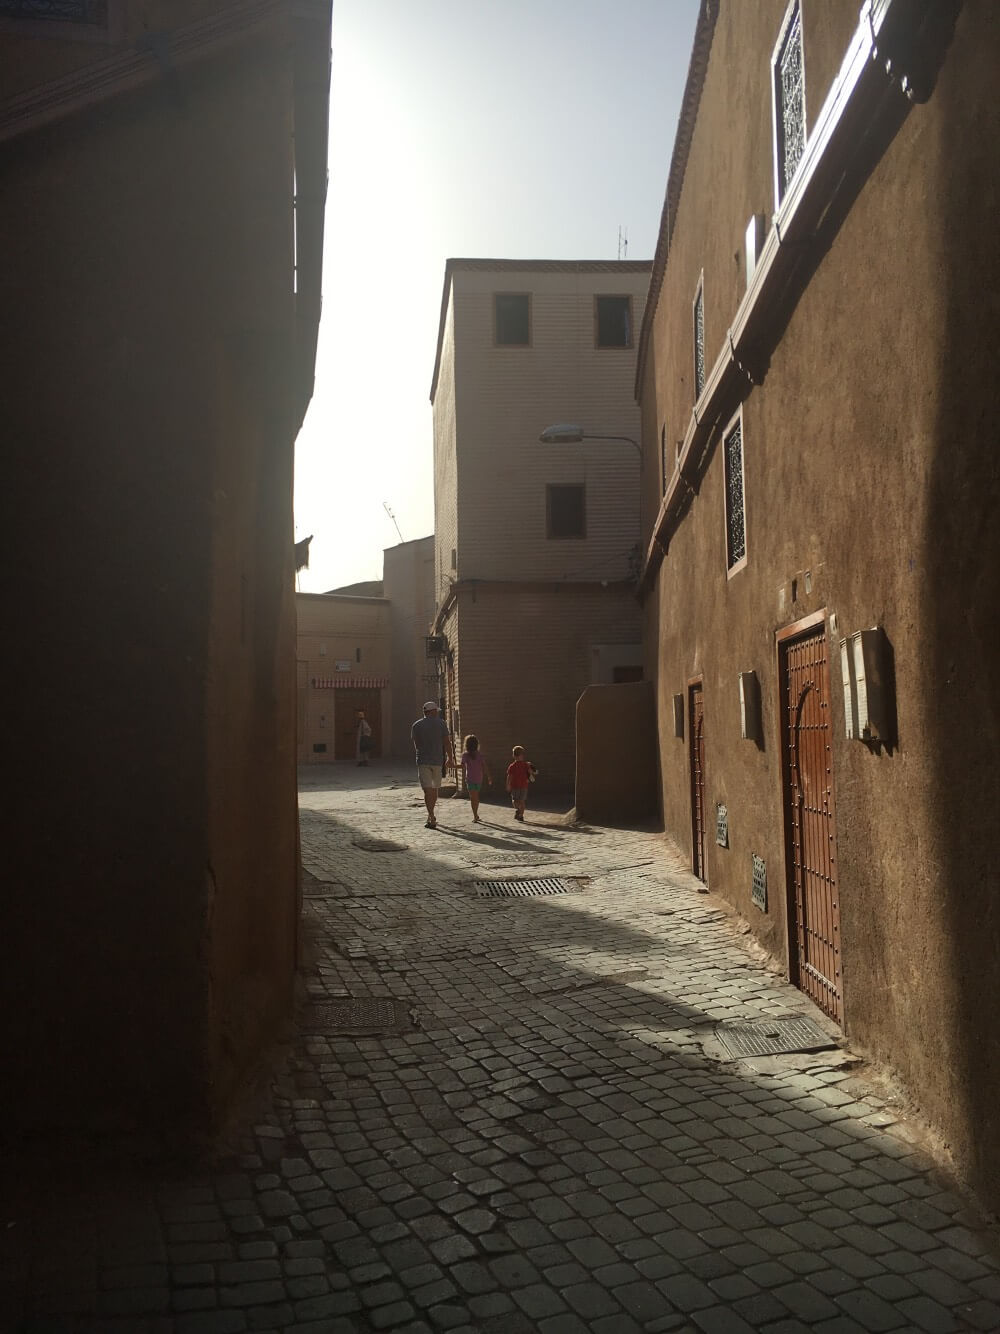 The medina is one of the best places in Marrakesh with kids